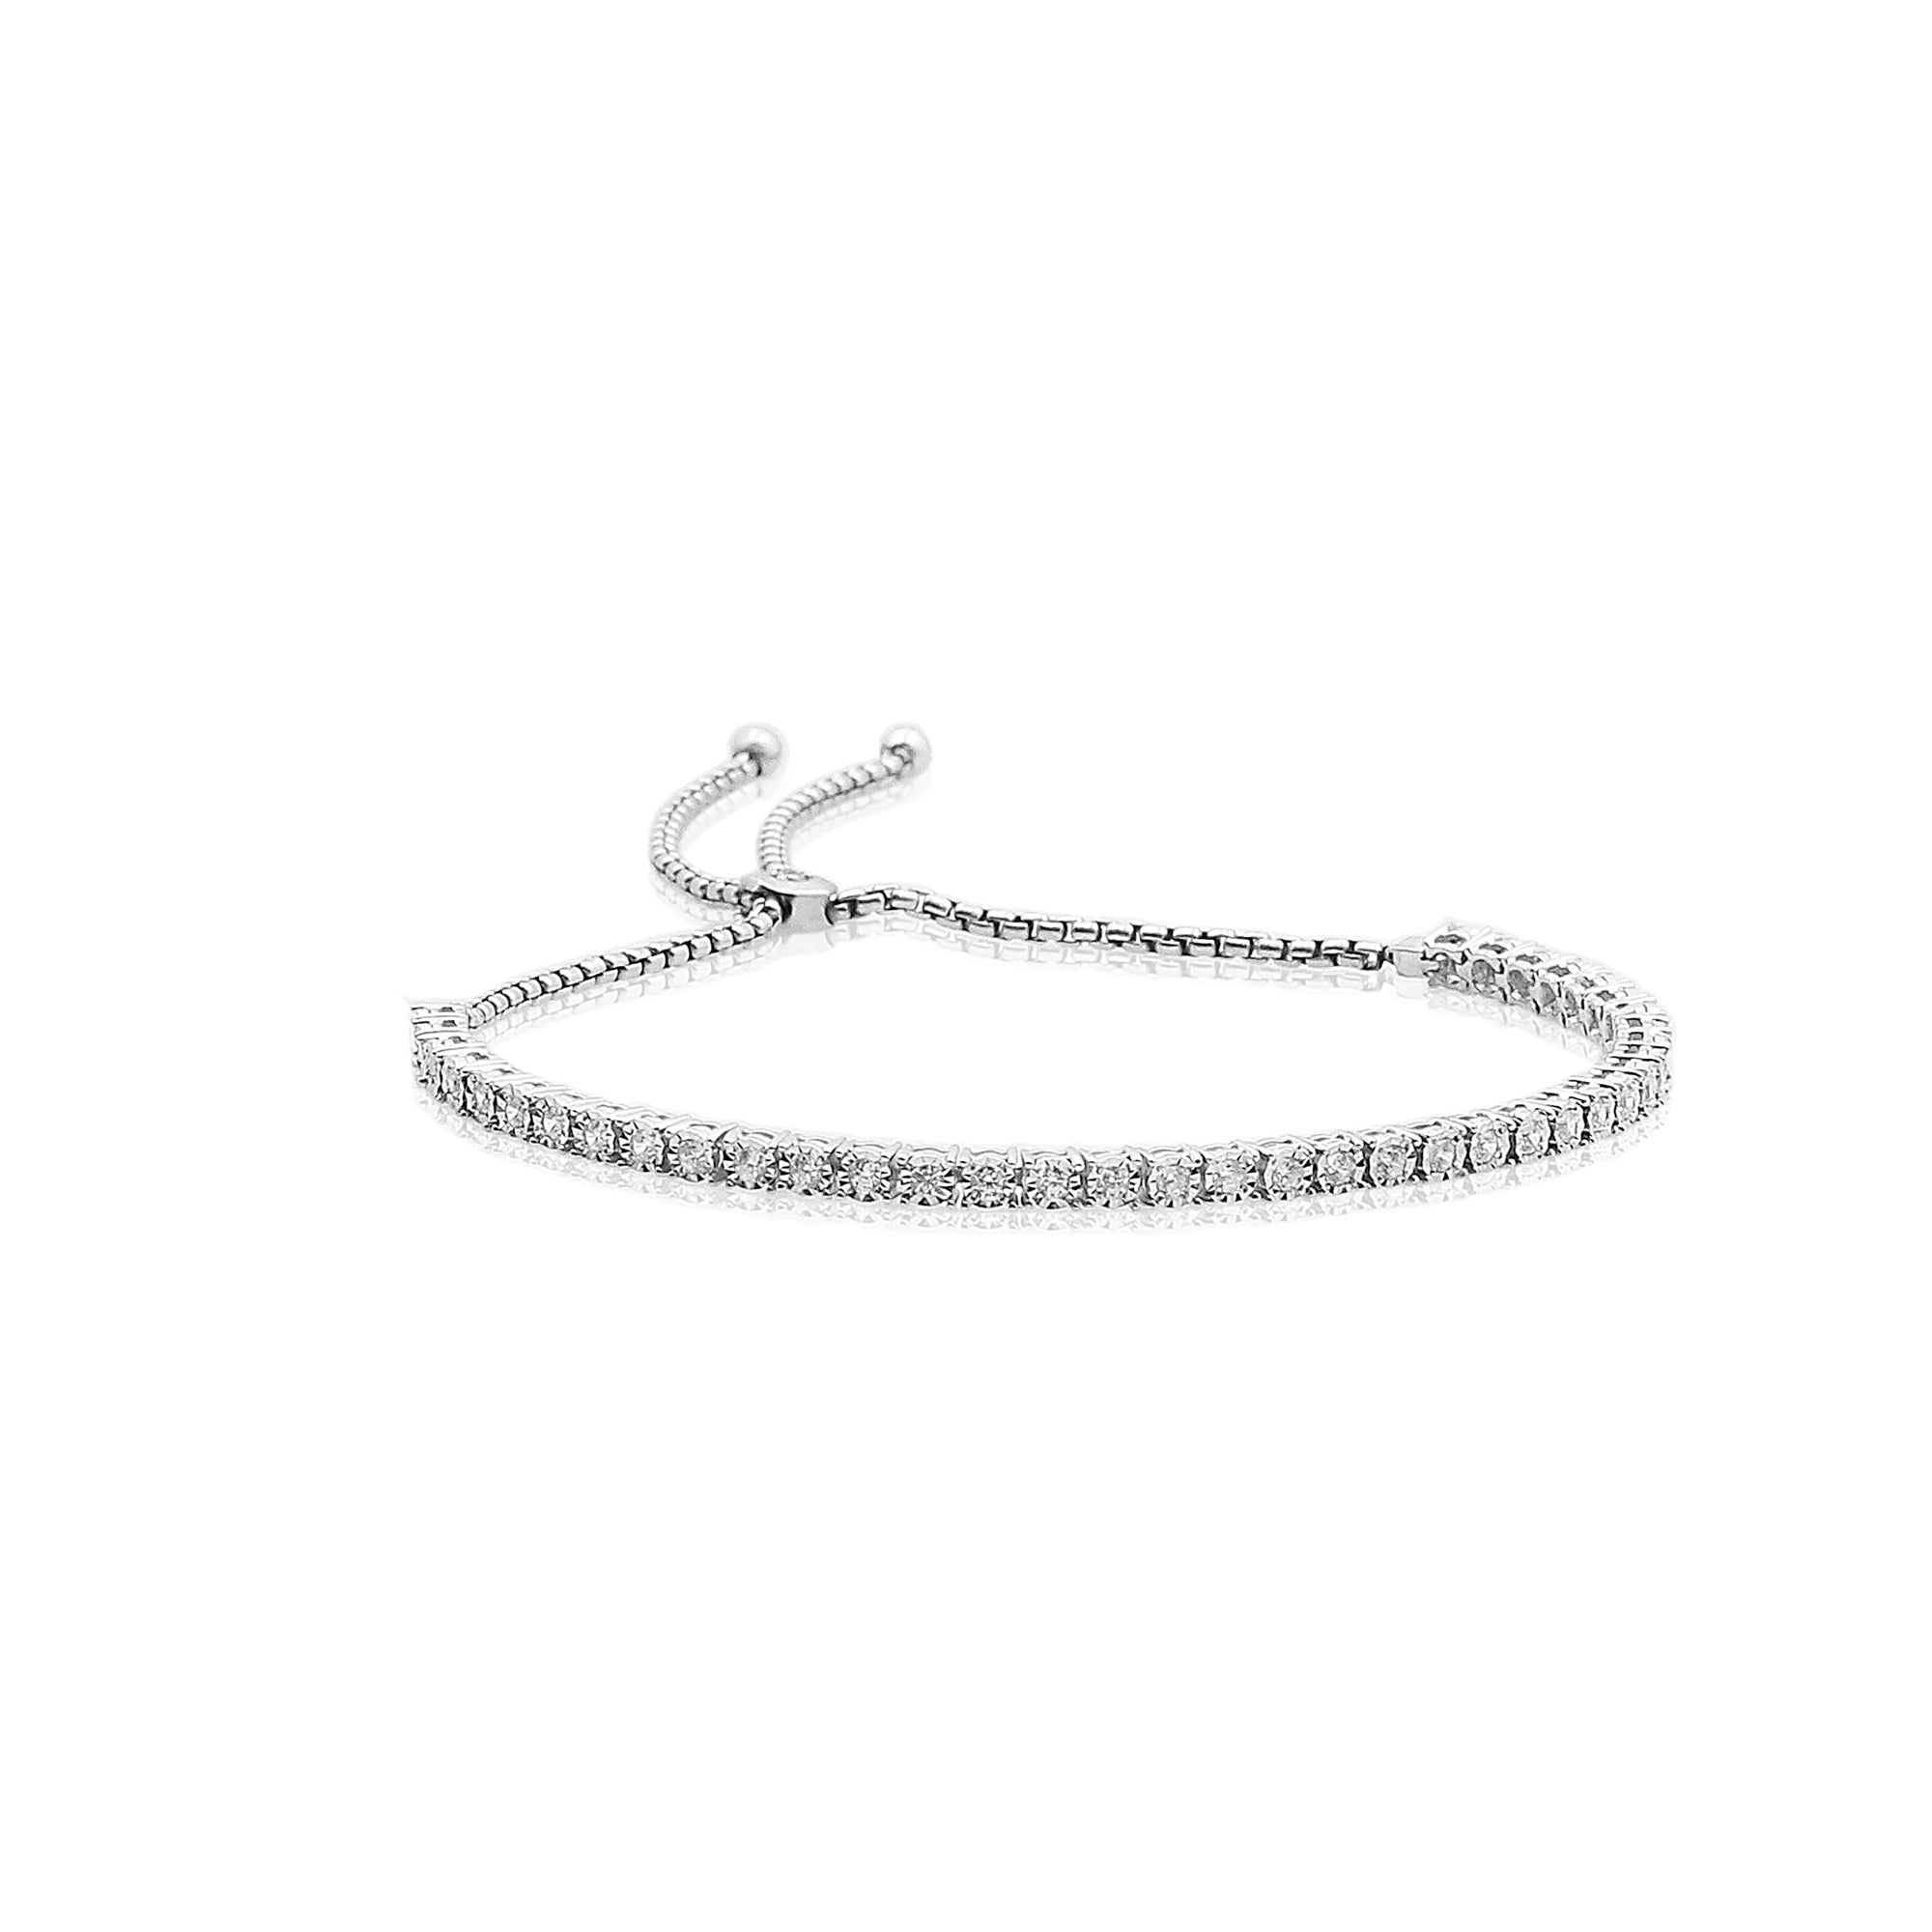 Adjustable Diamond Tennis Bracelet Little Switzerland